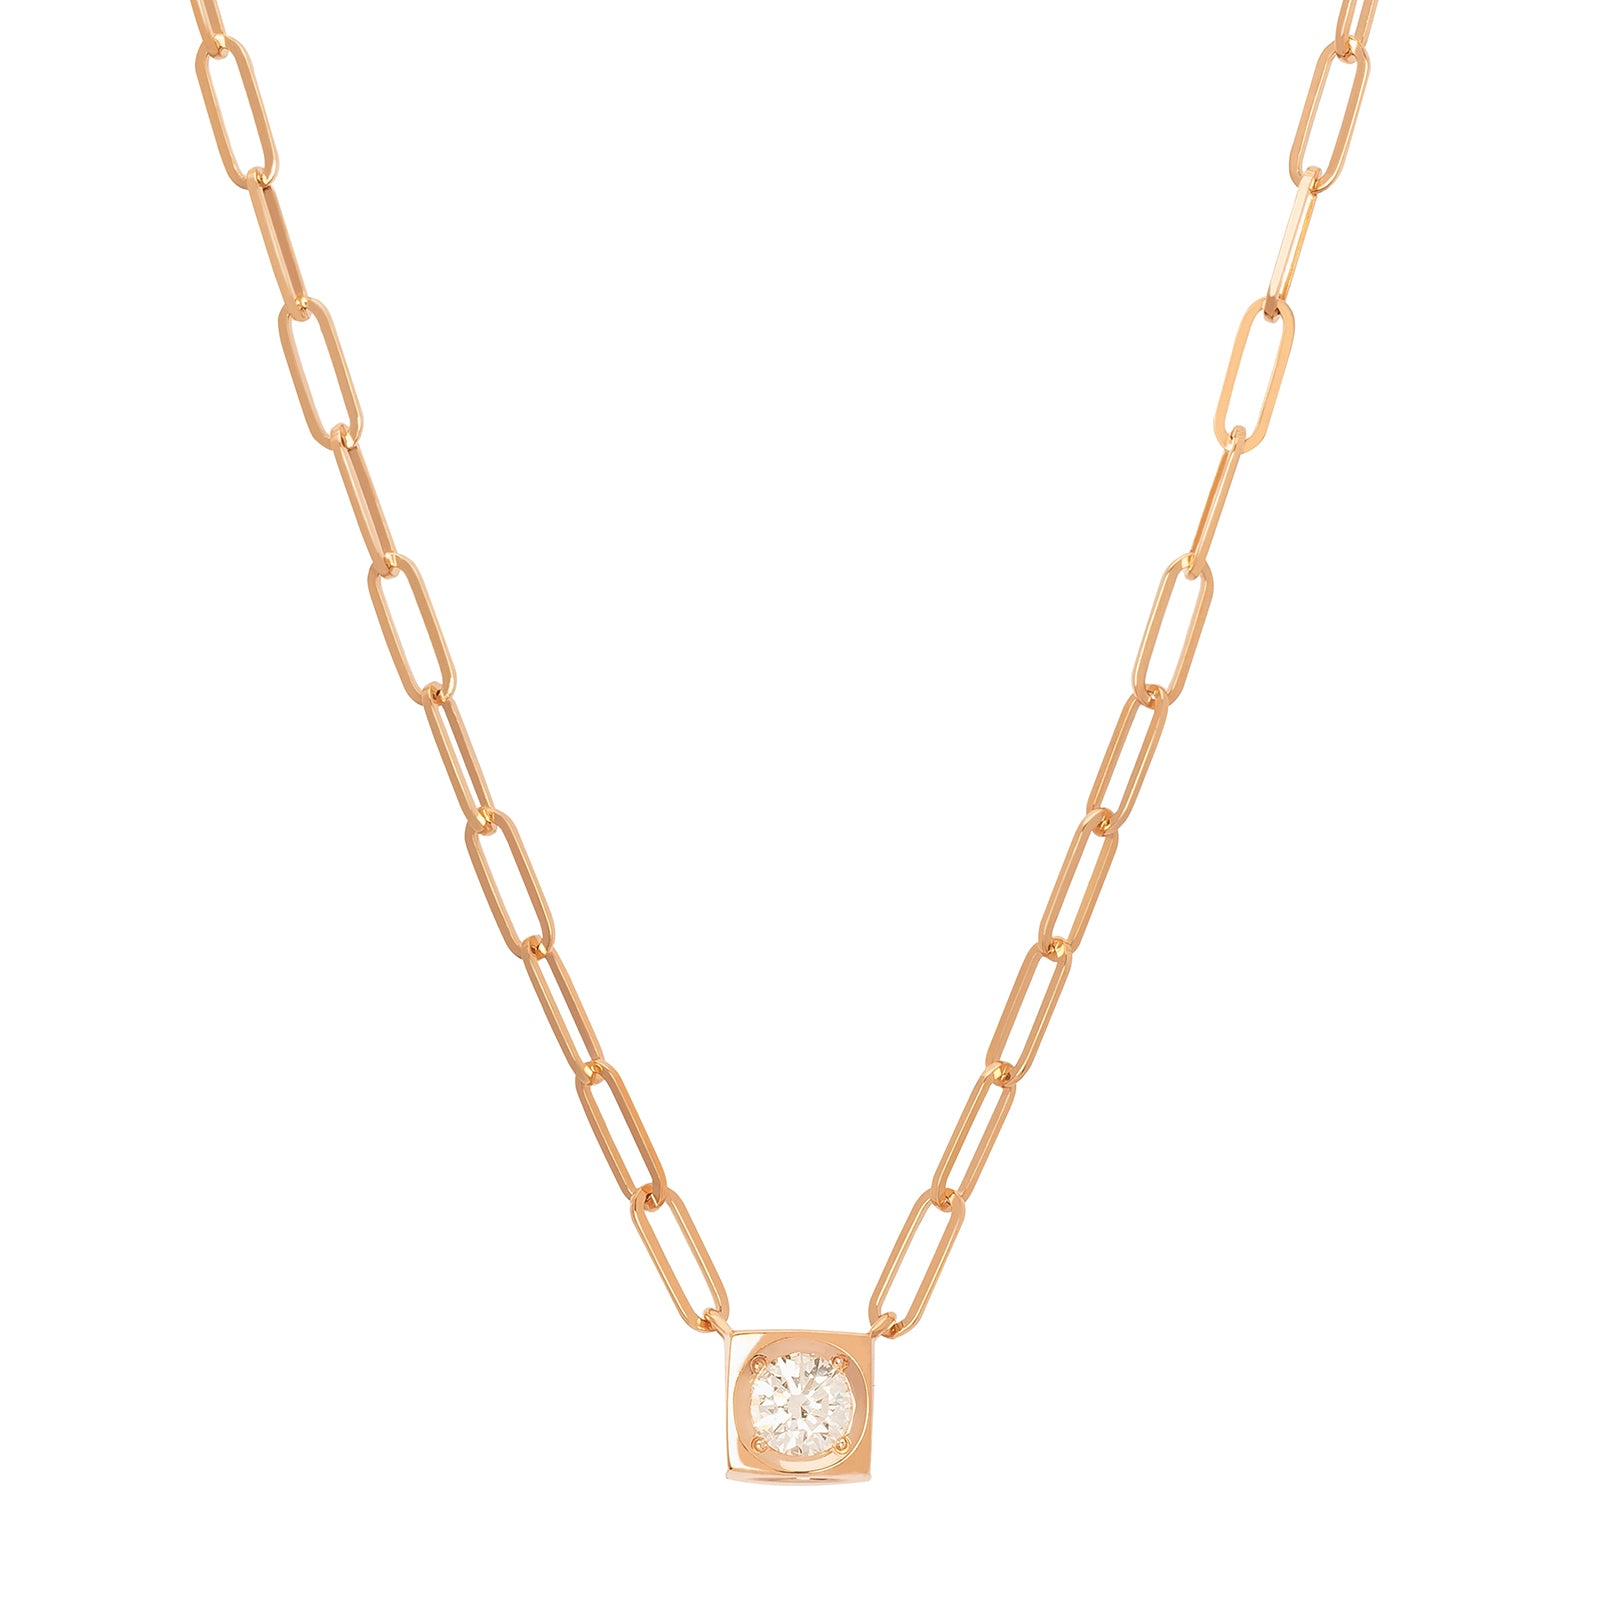 Dinh Van Le Cube Diamant Large Necklace - Rose Gold - Necklaces - Broken English Jewelry